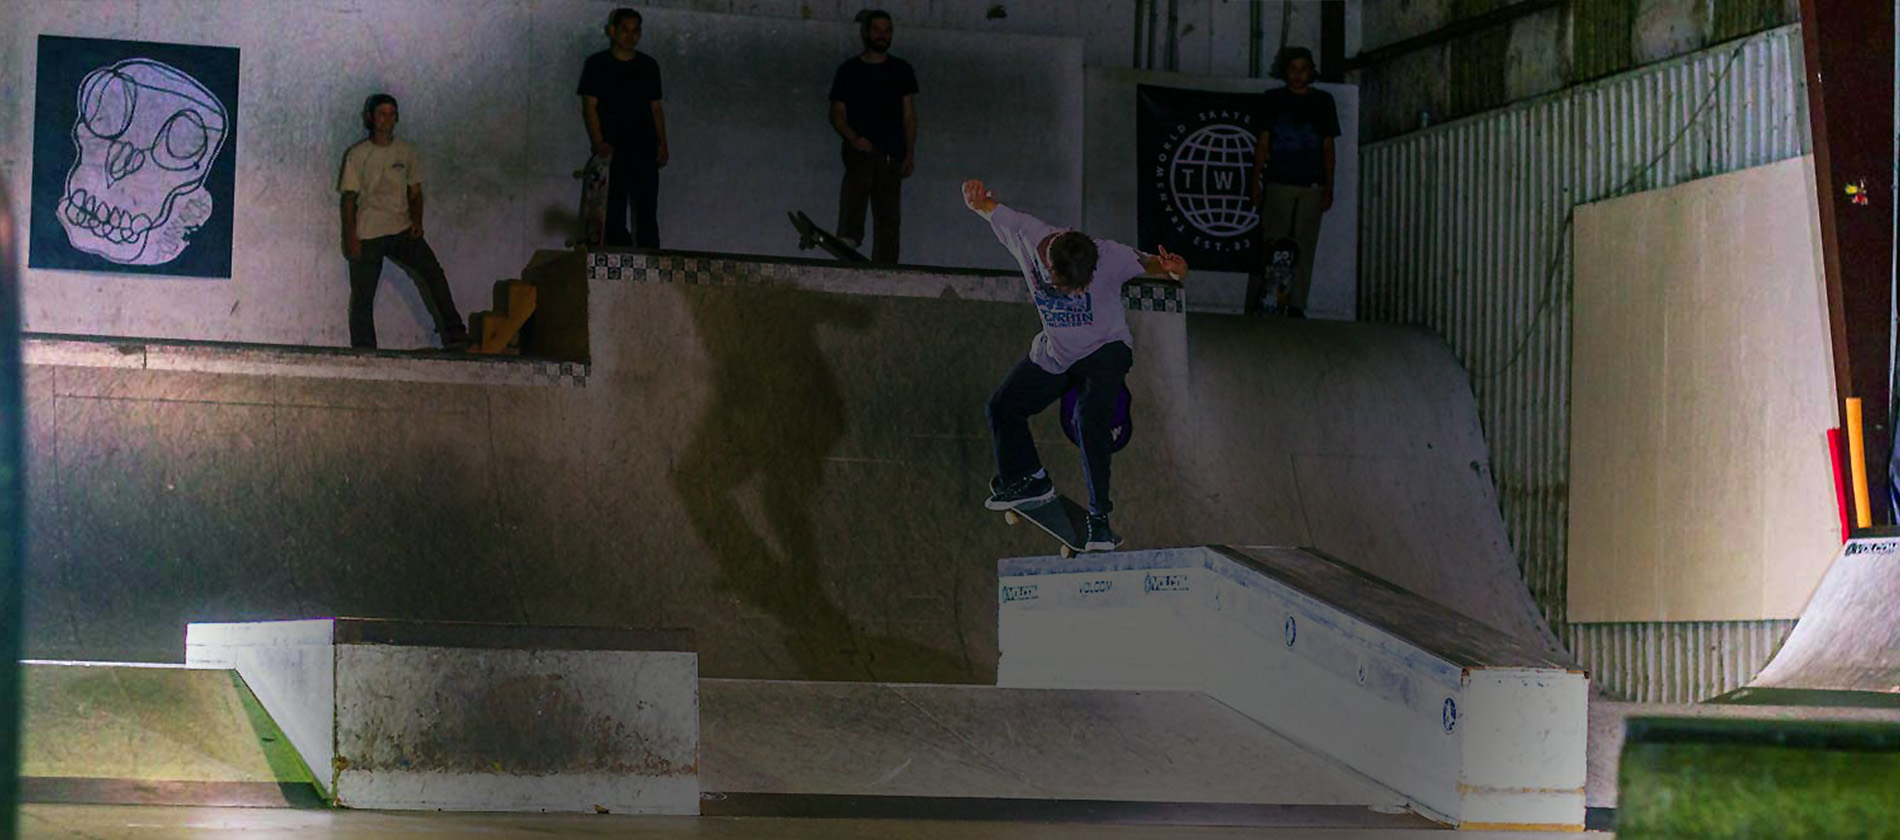 Texas Skate Jam is HAPPENING!